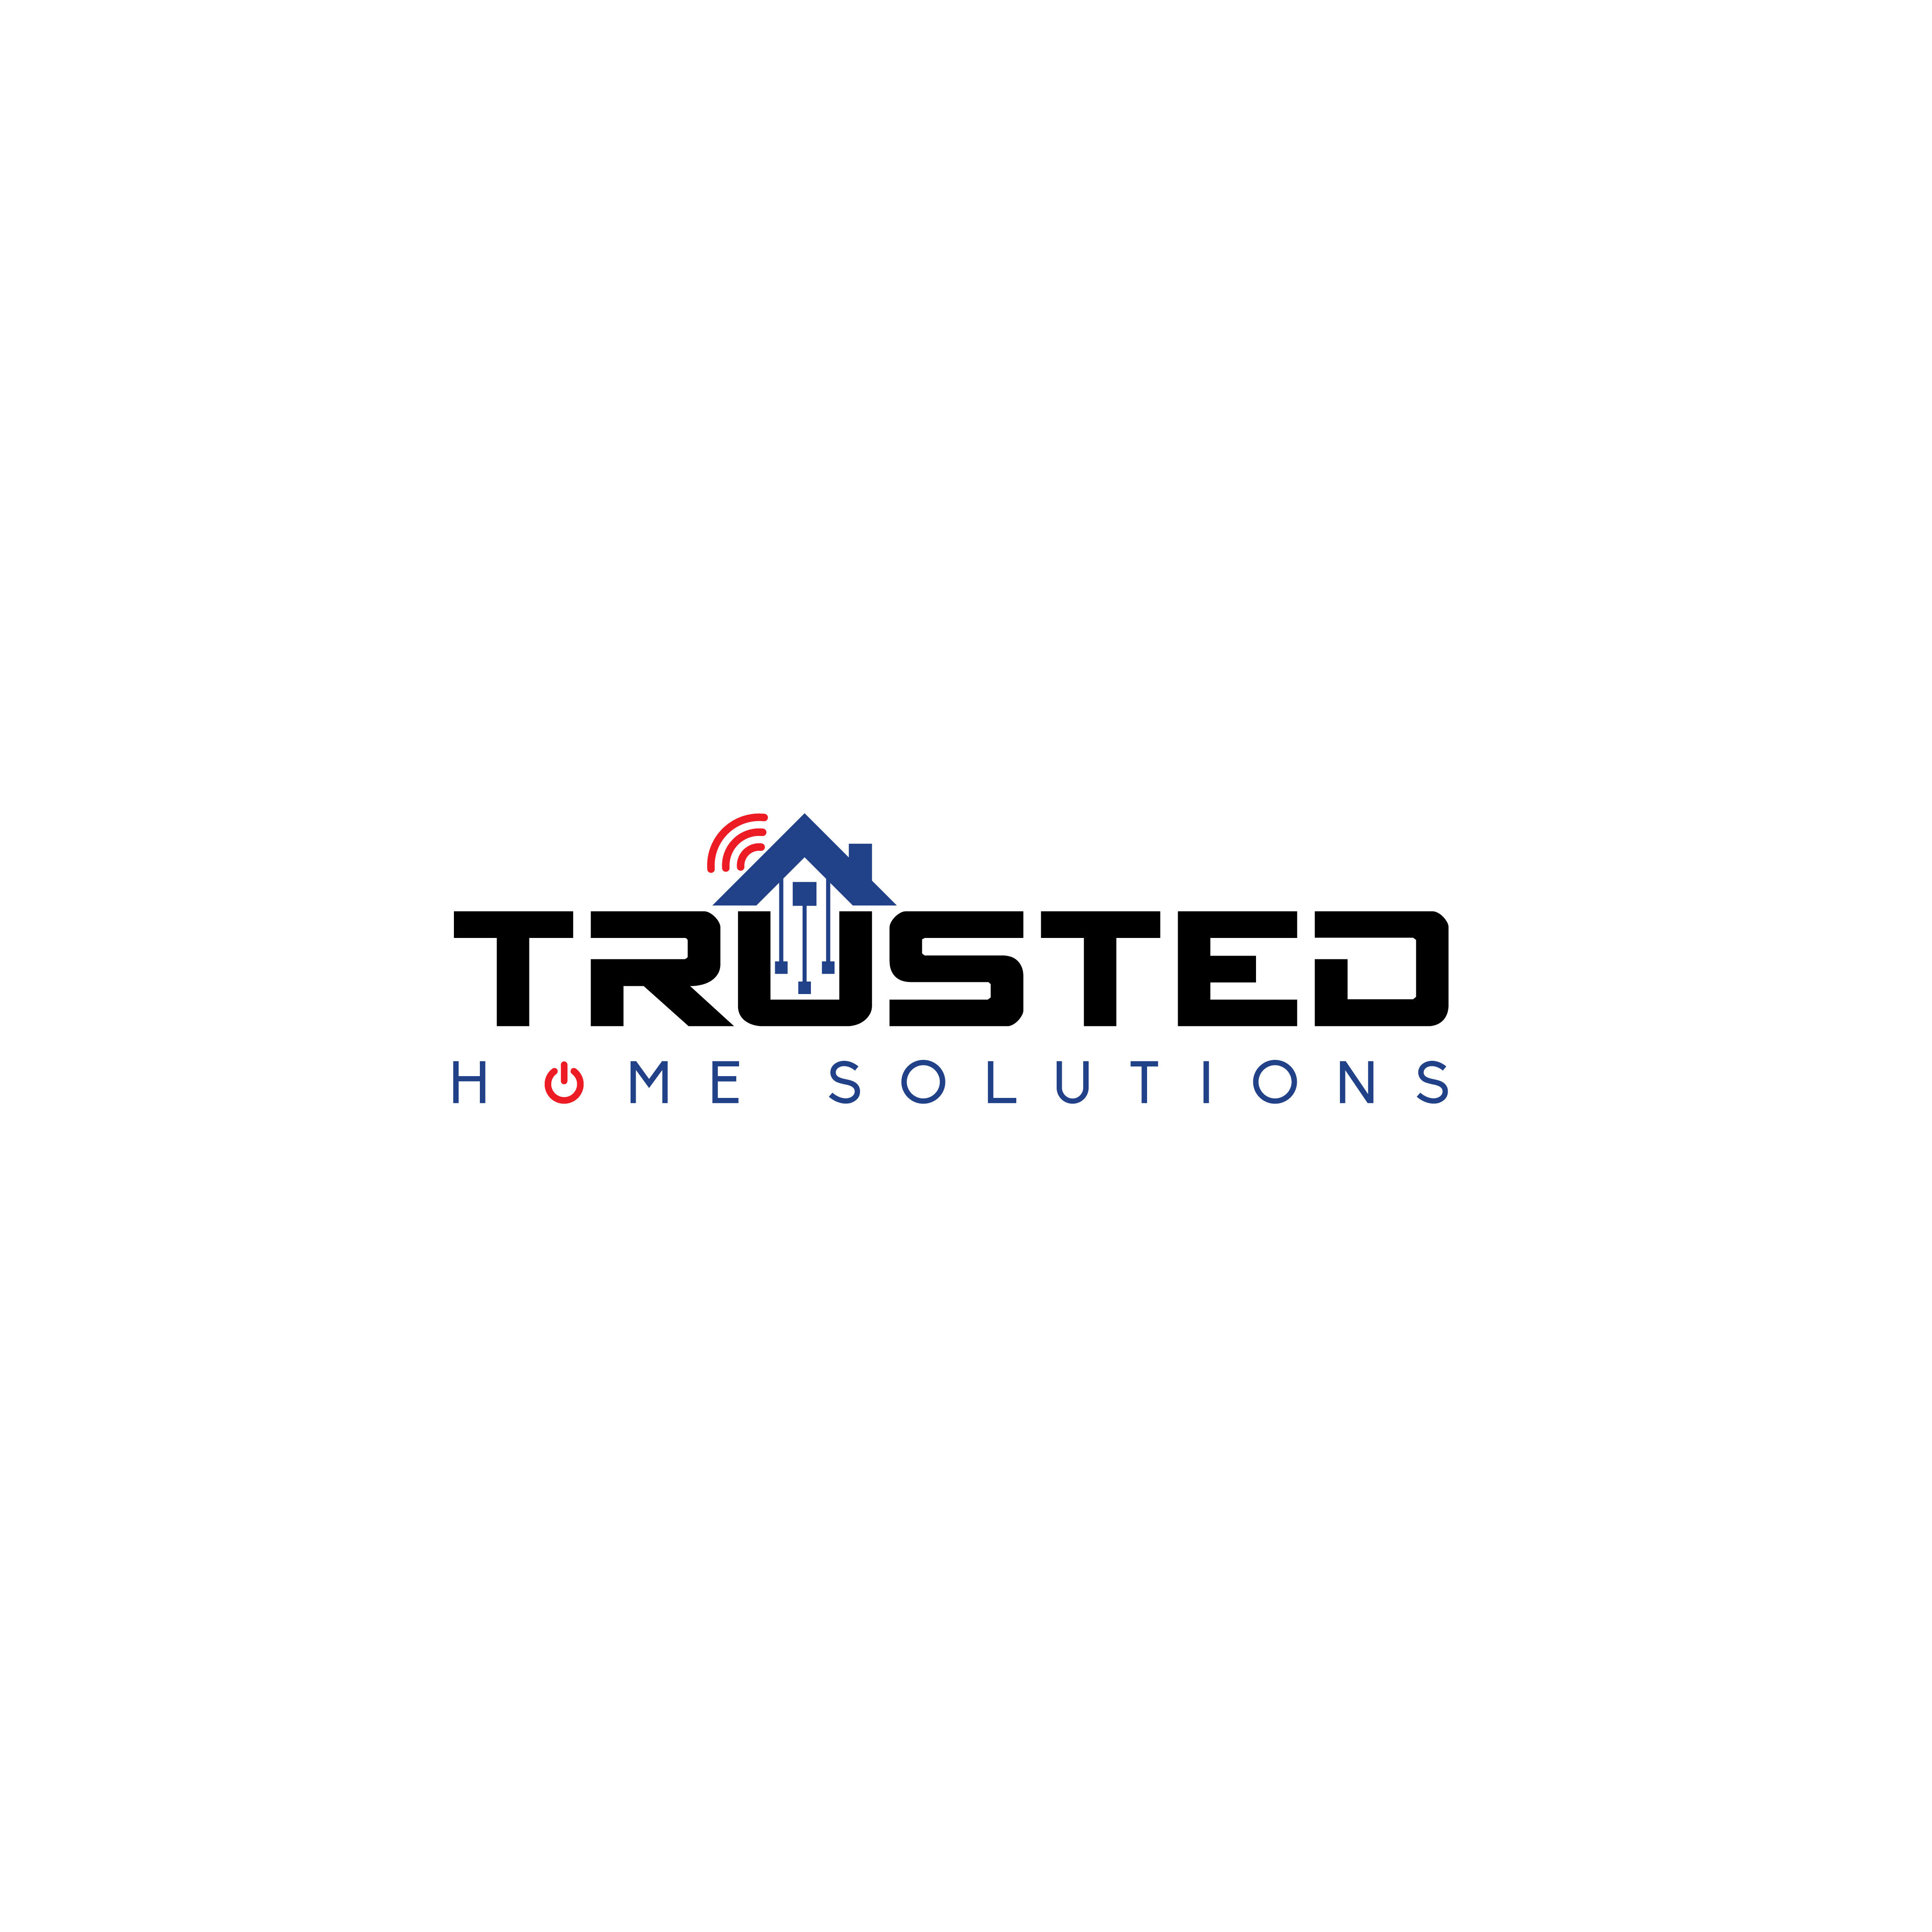 Trusted Homes Solutions